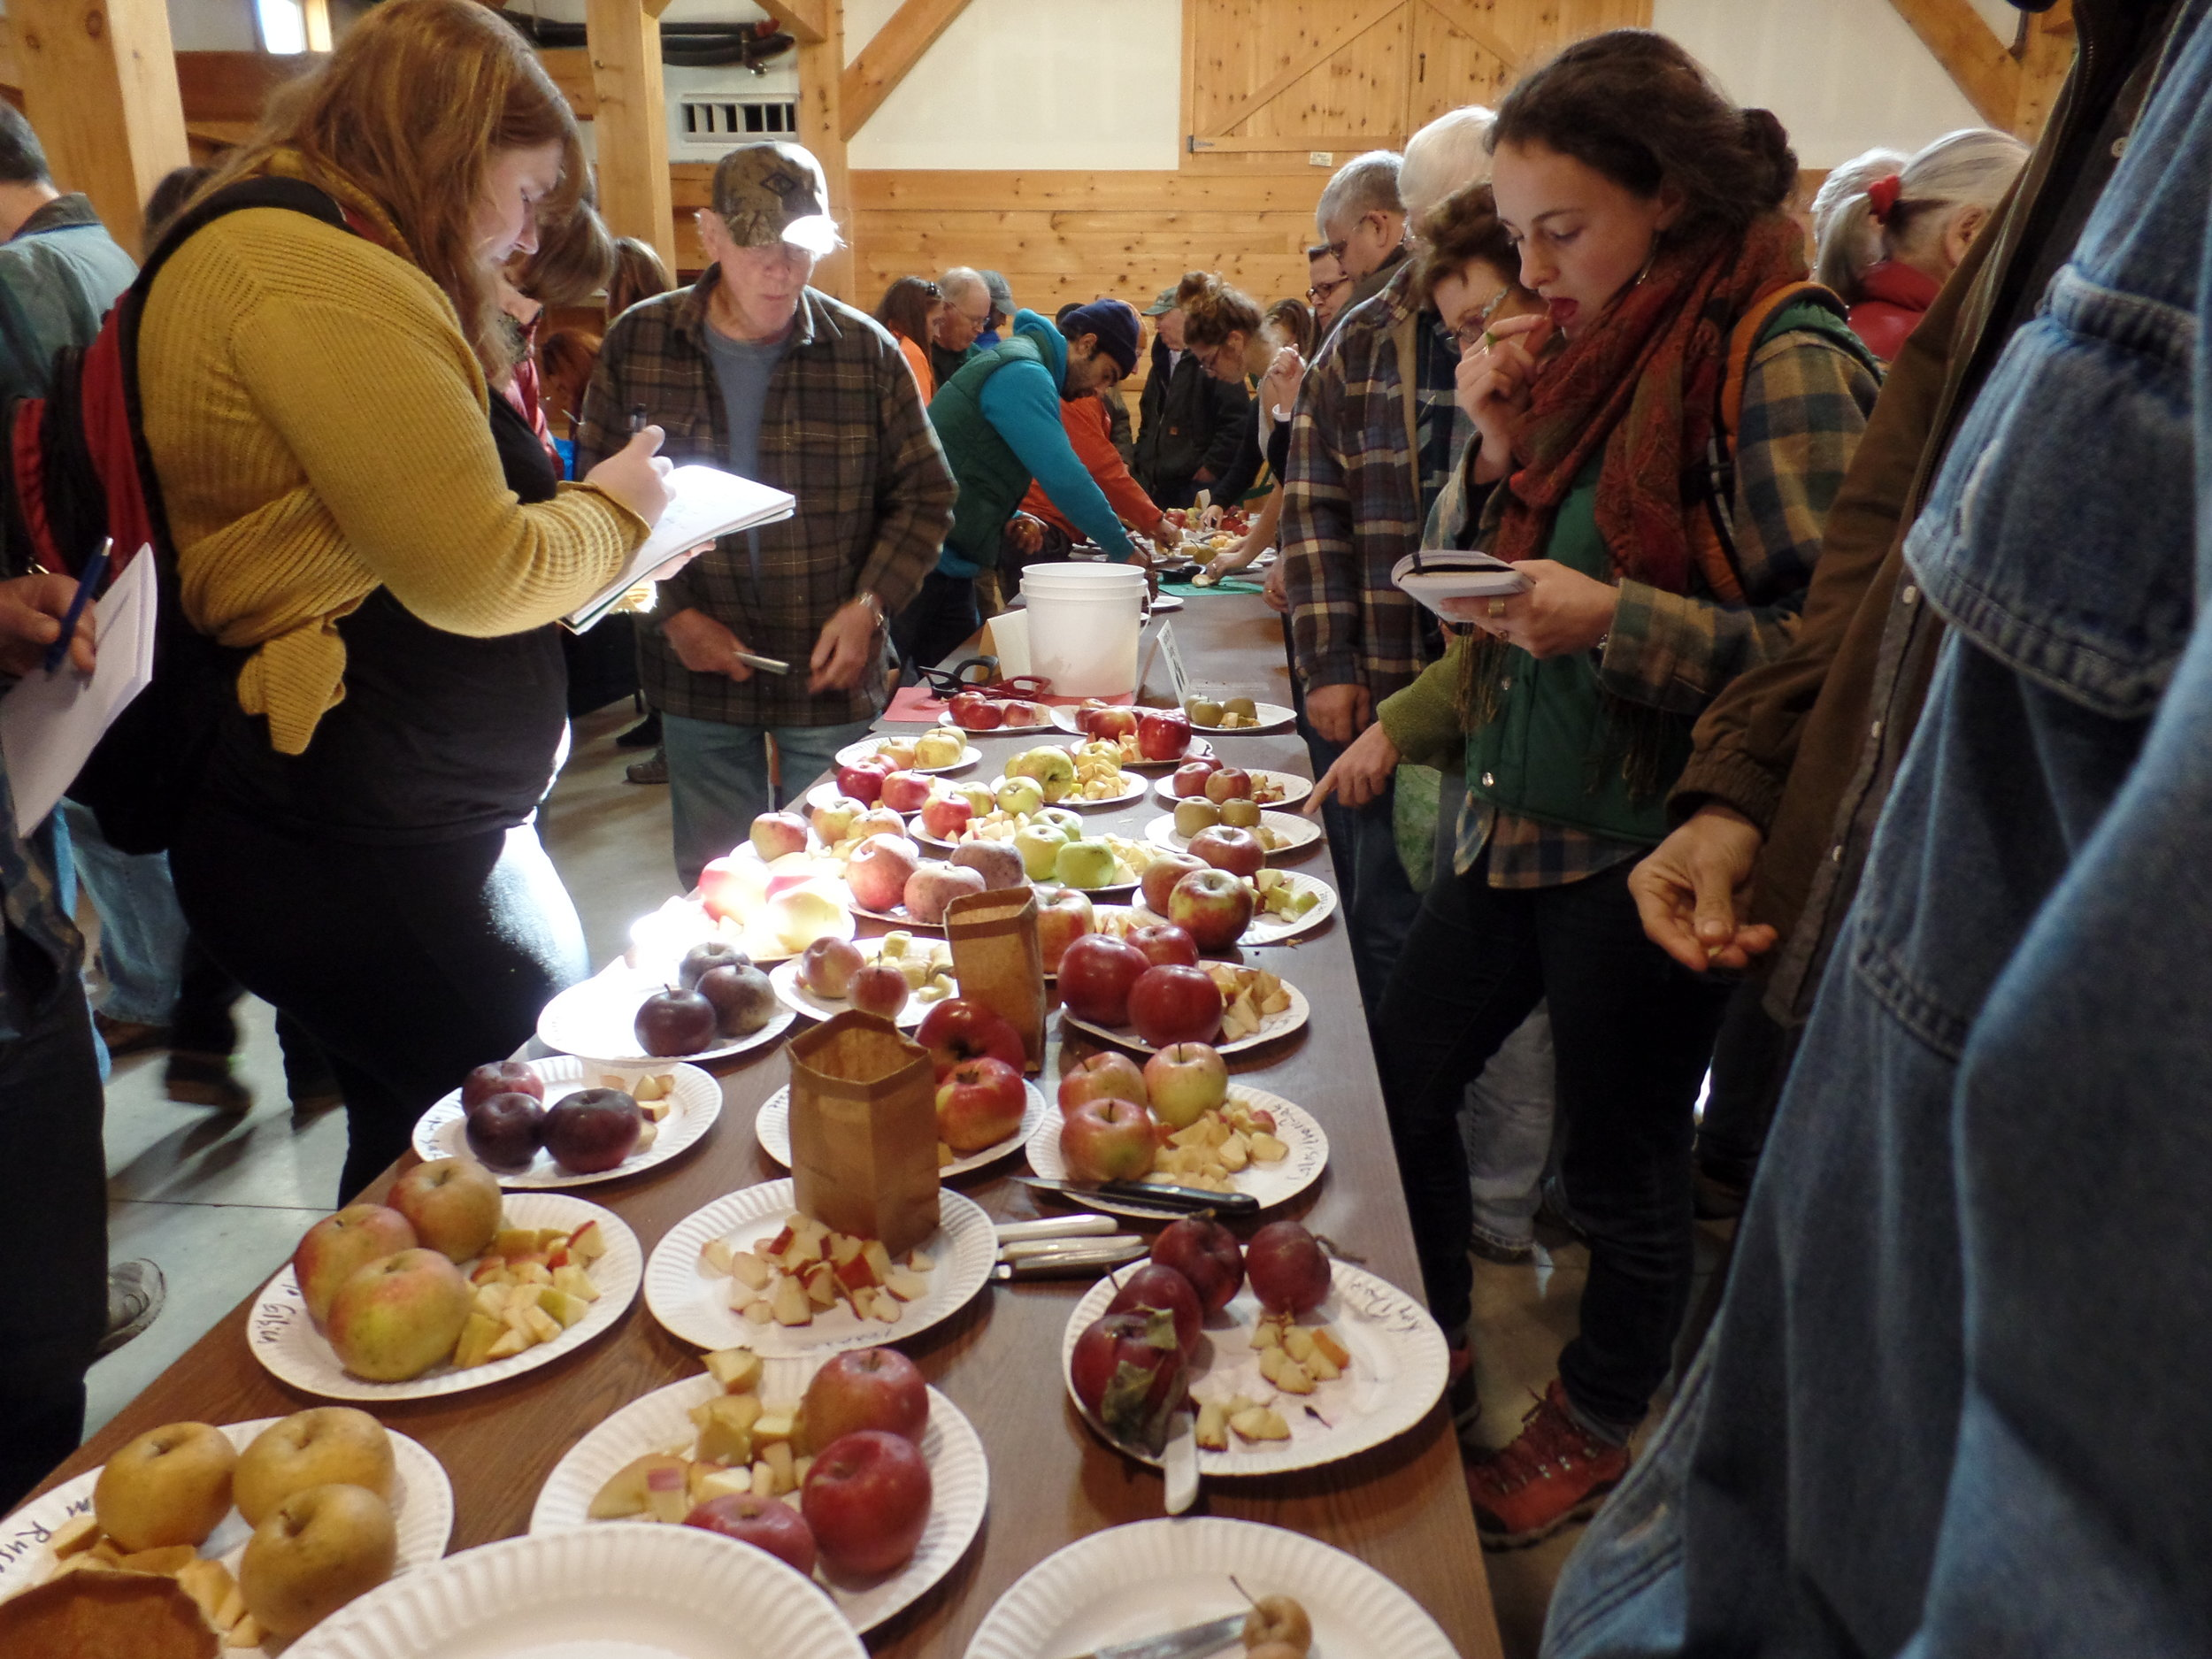 tasting apples at the 2015 Great Maine Apple Day